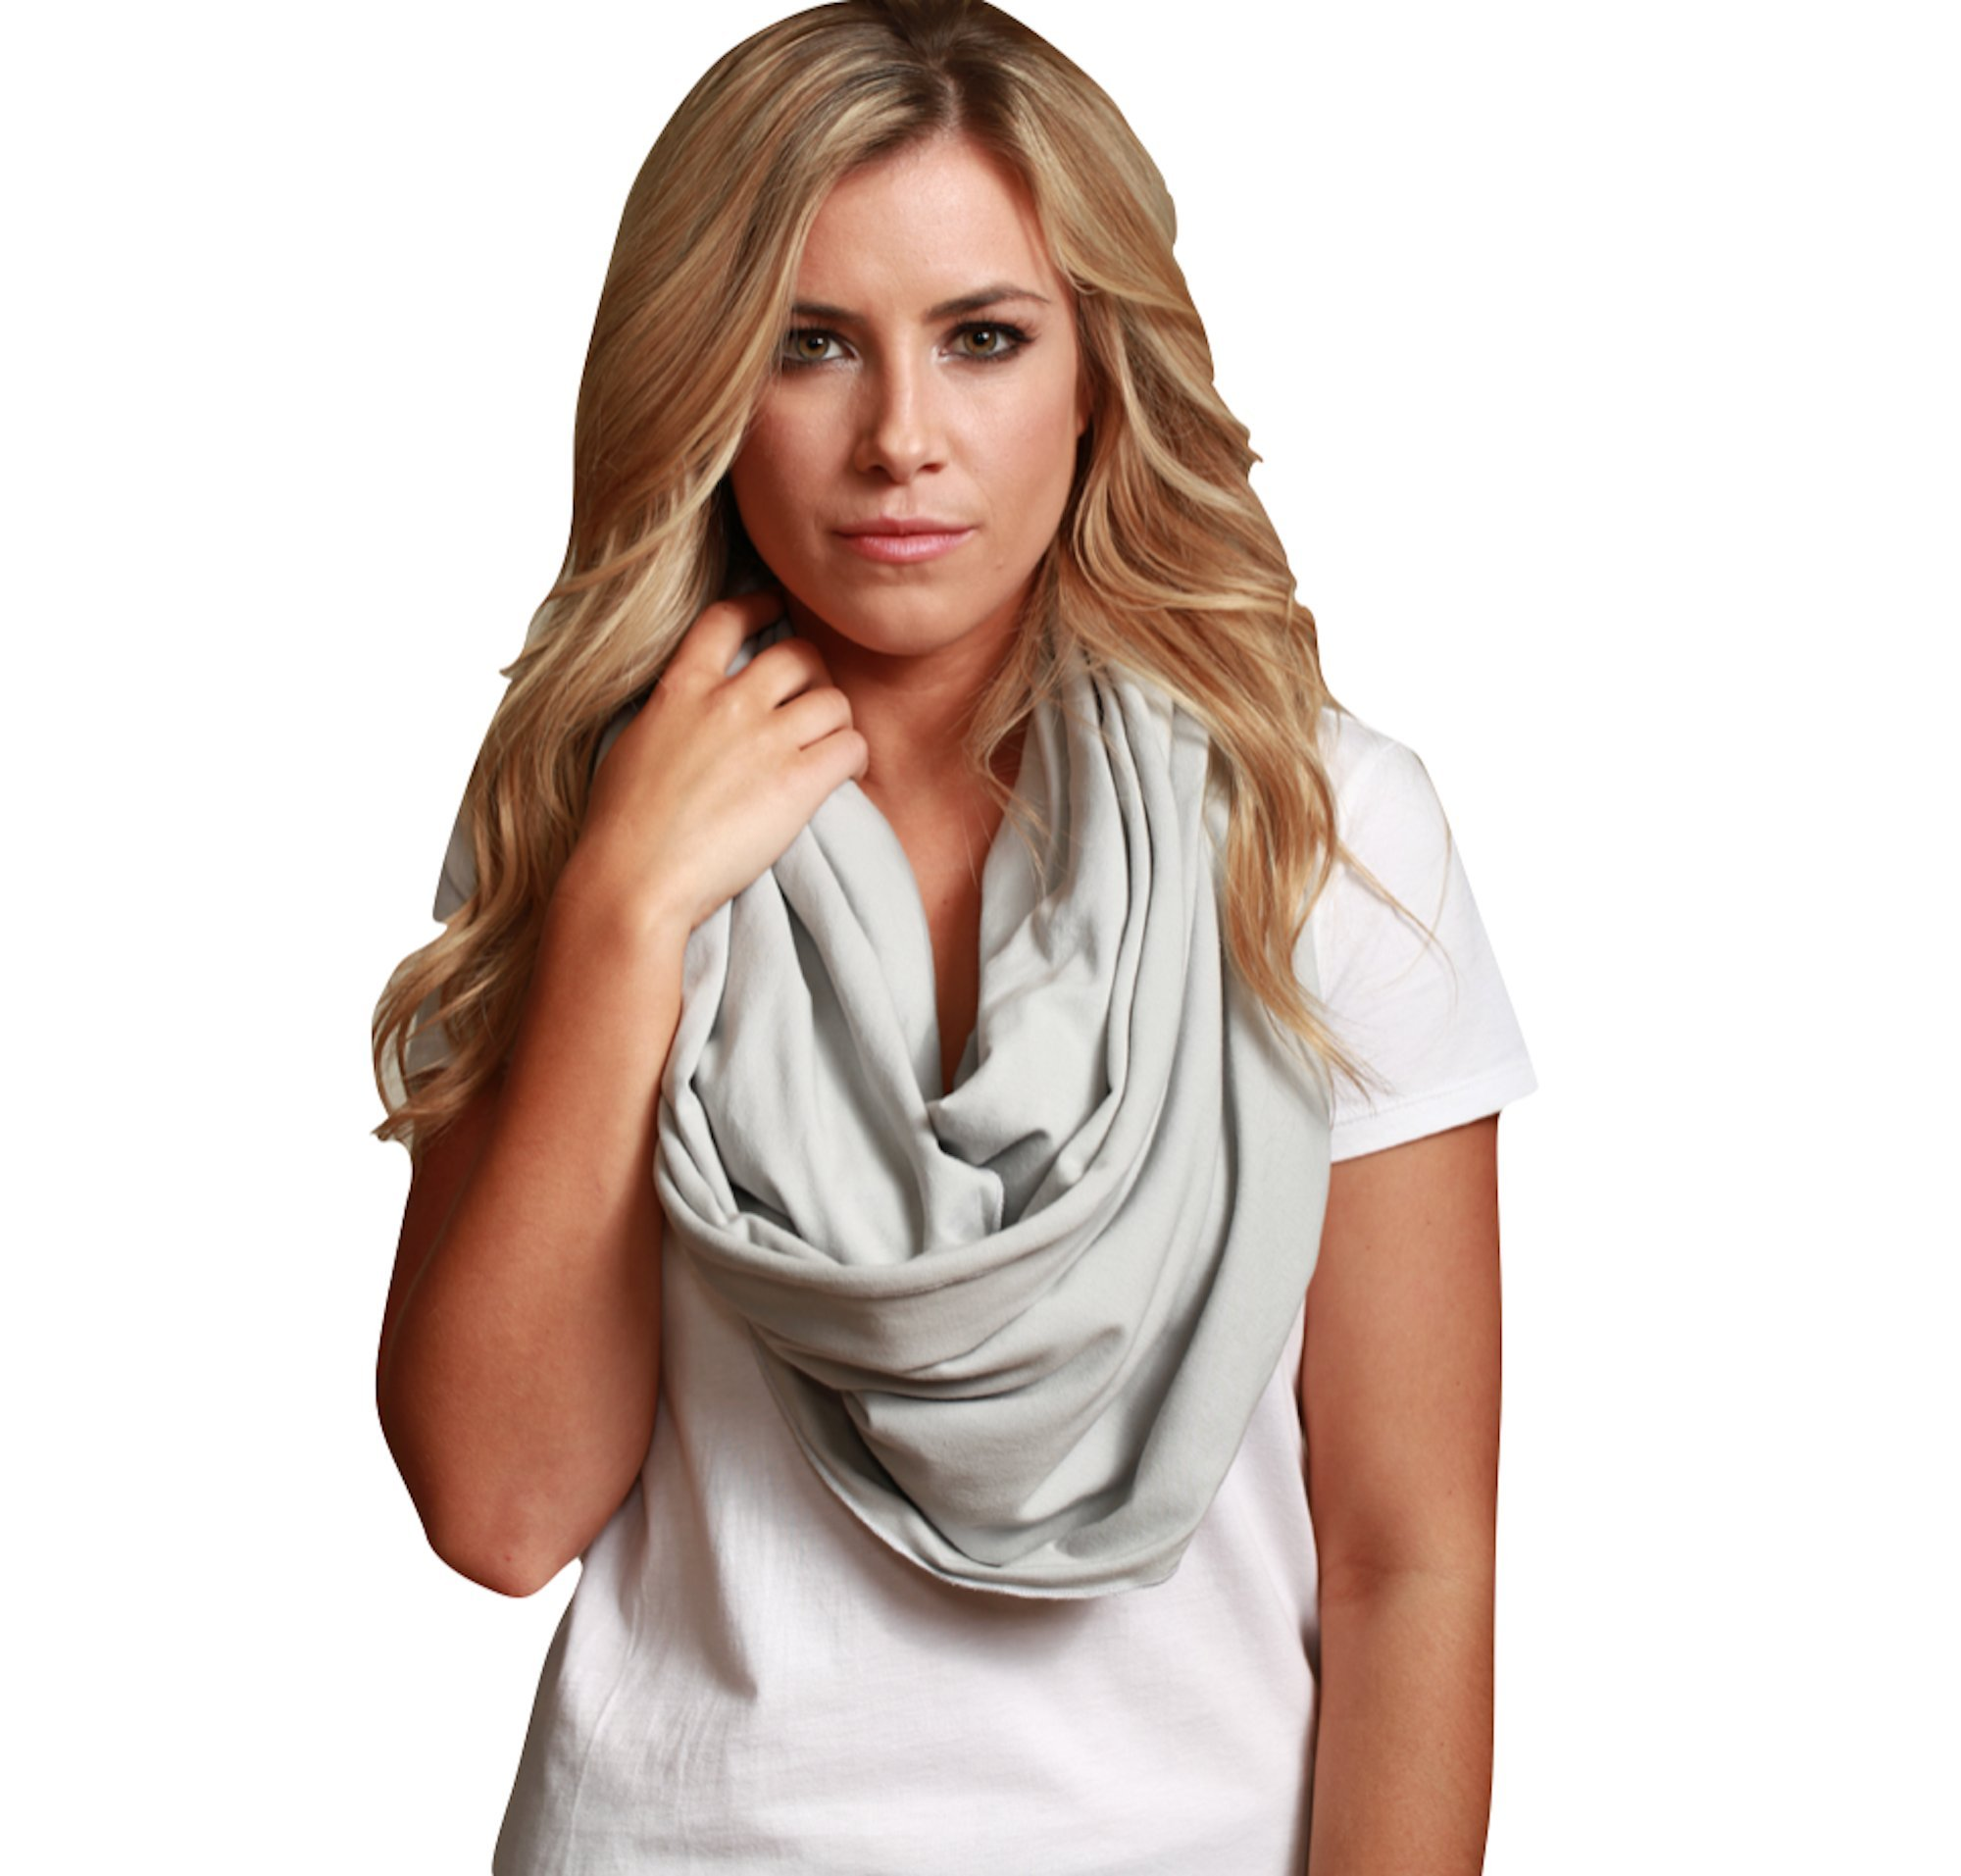 Sleeper Scarf 2-in-1 Travel Scarf and Inflatable Neck Pillow (Grey, Traditional Inflate) by Sleeper Scarf